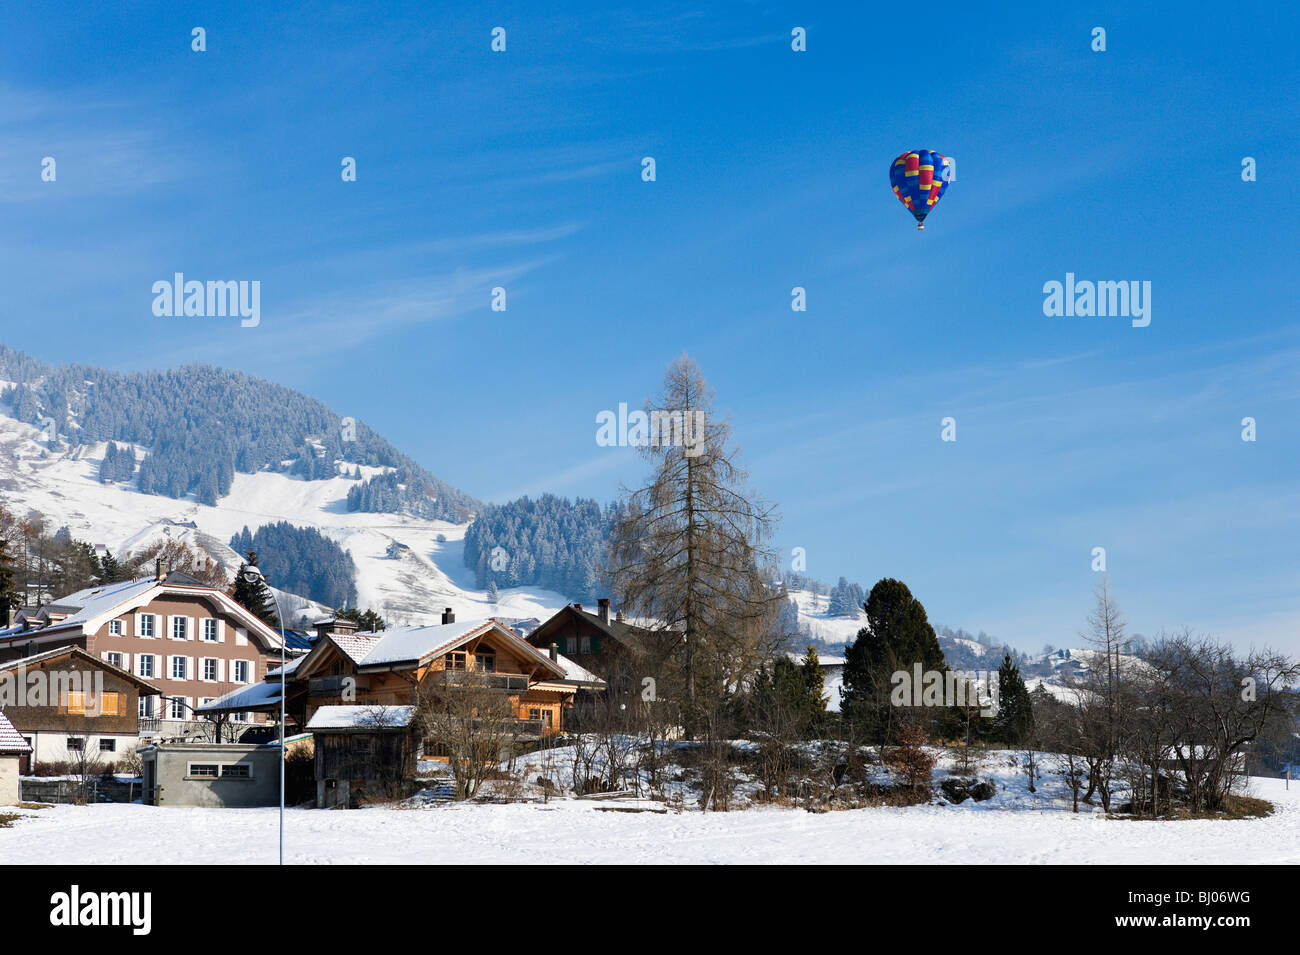 Single hot air balloon over the town during the January Balloon Festival, Chateau d'Oex, Vaud, Switzerland Stock Photo